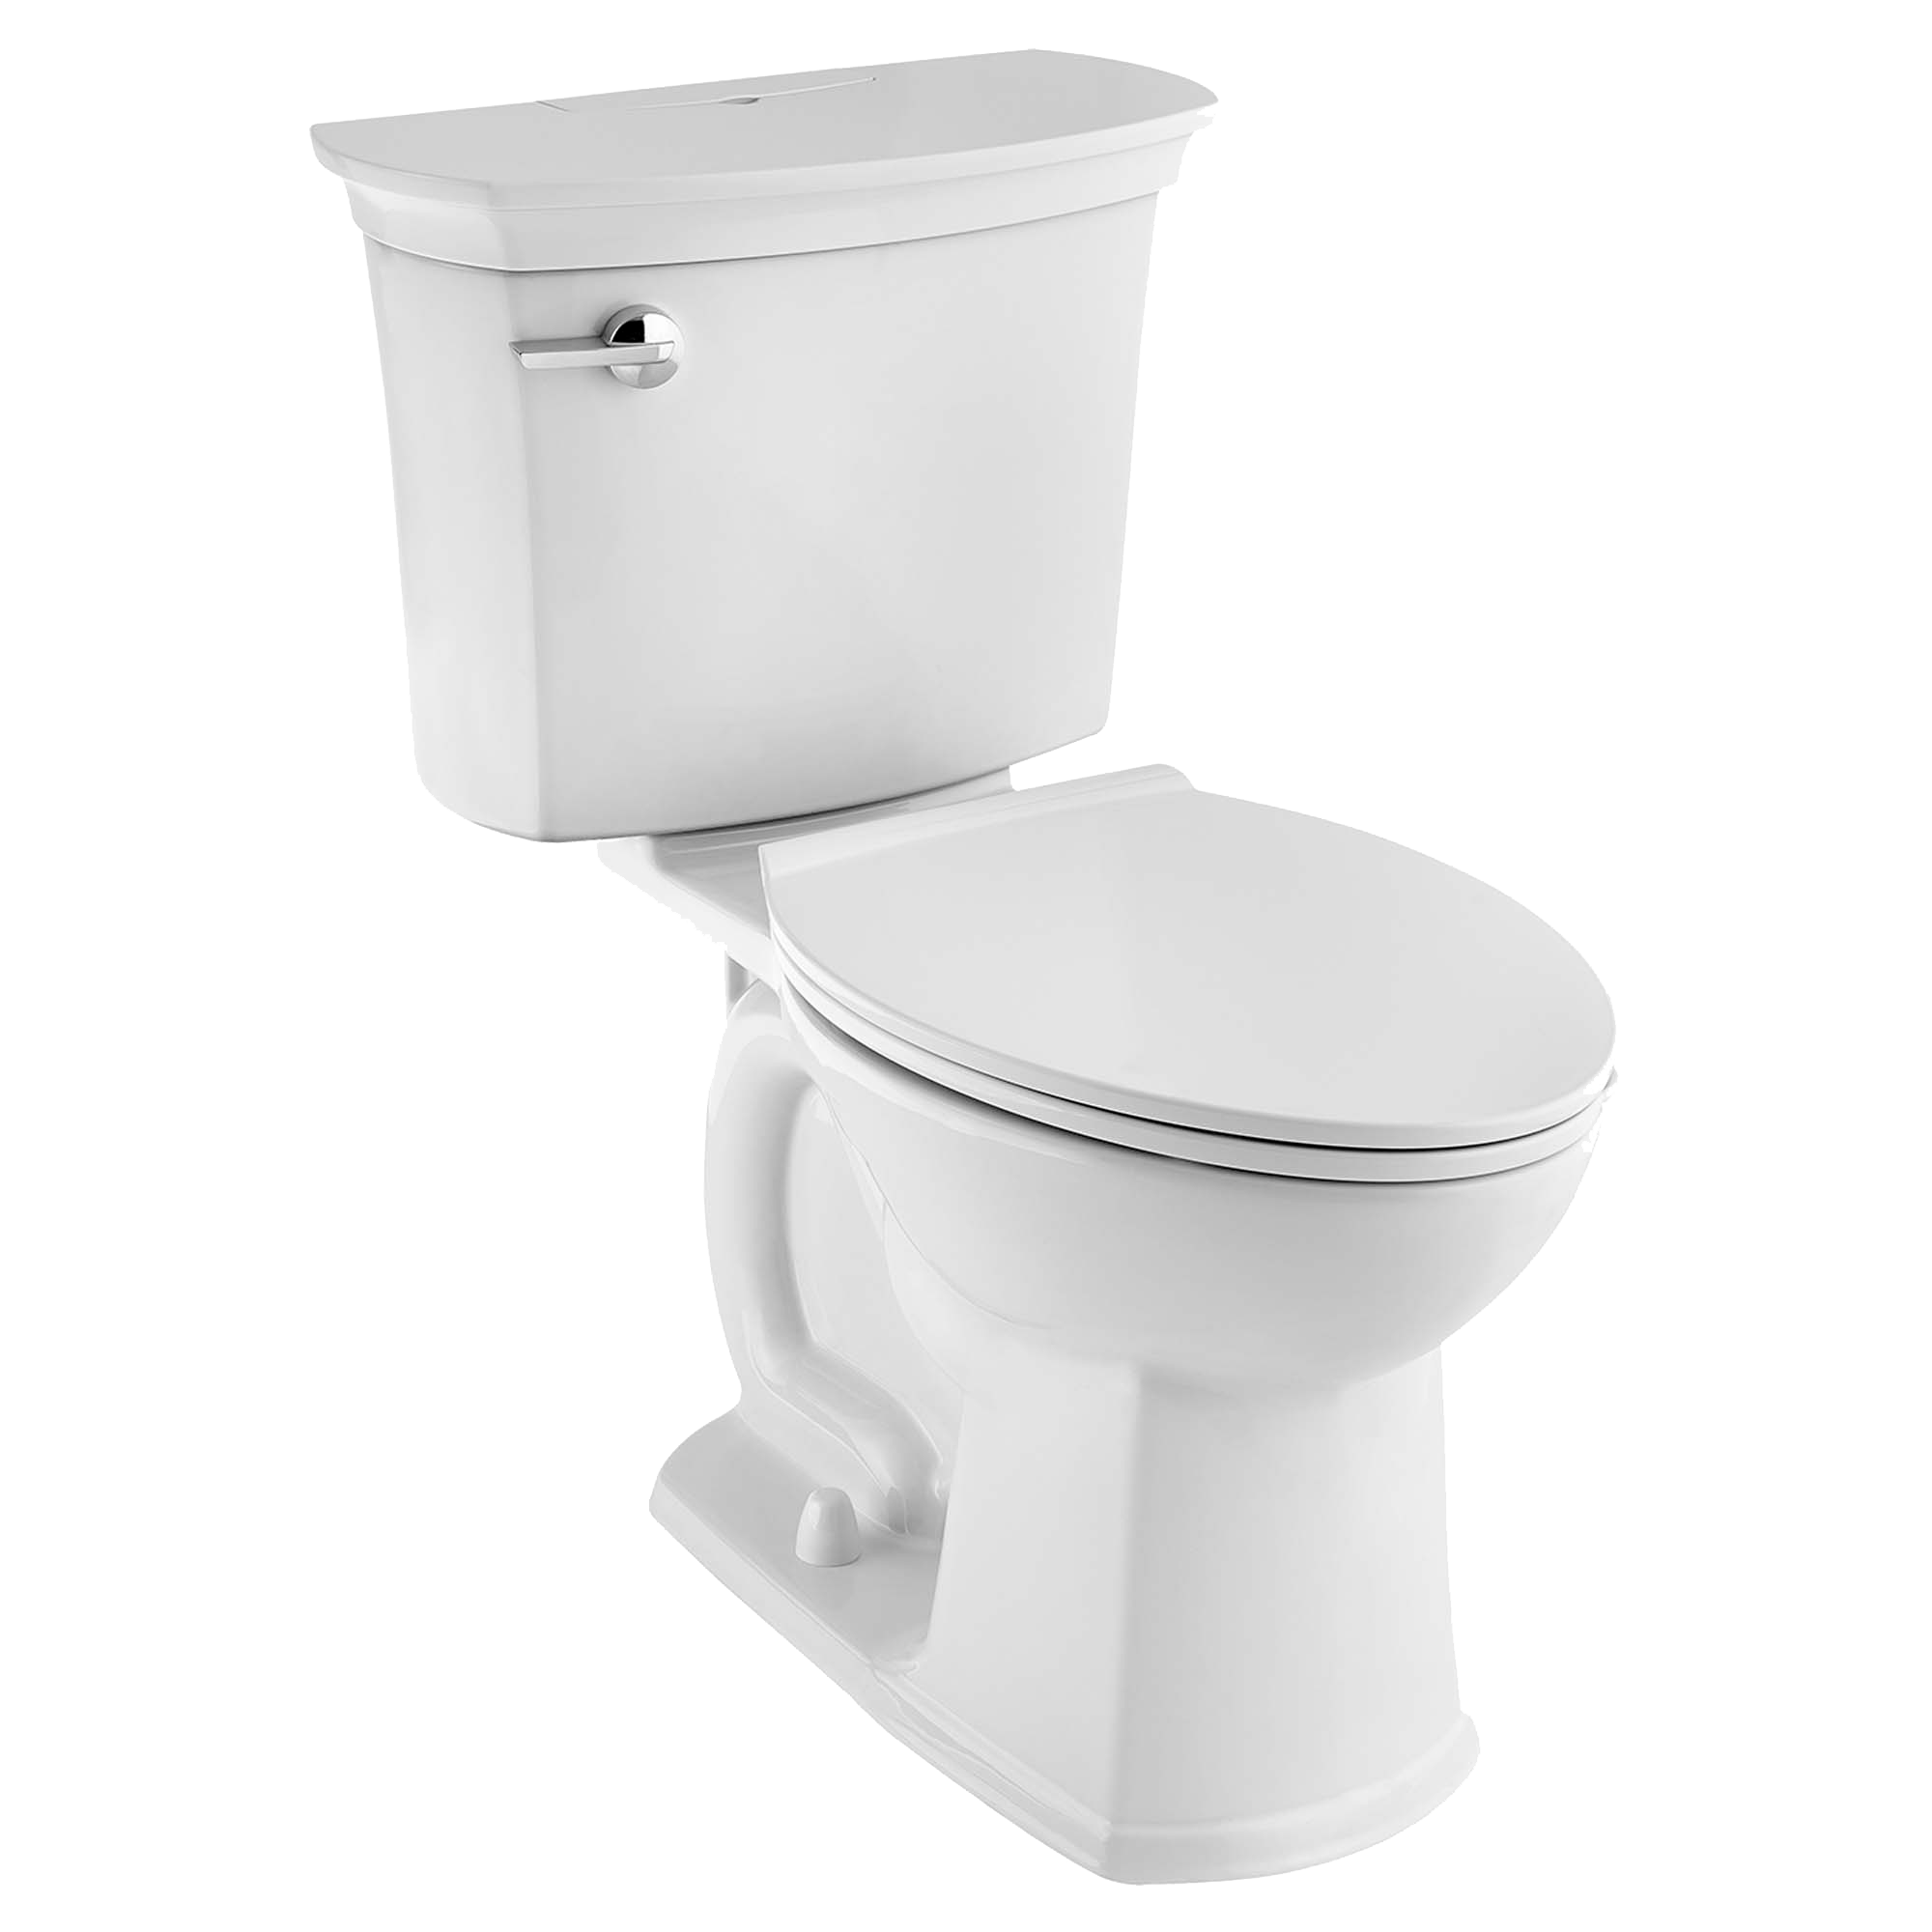 Toilet top view png. Acticlean self cleaning elongated